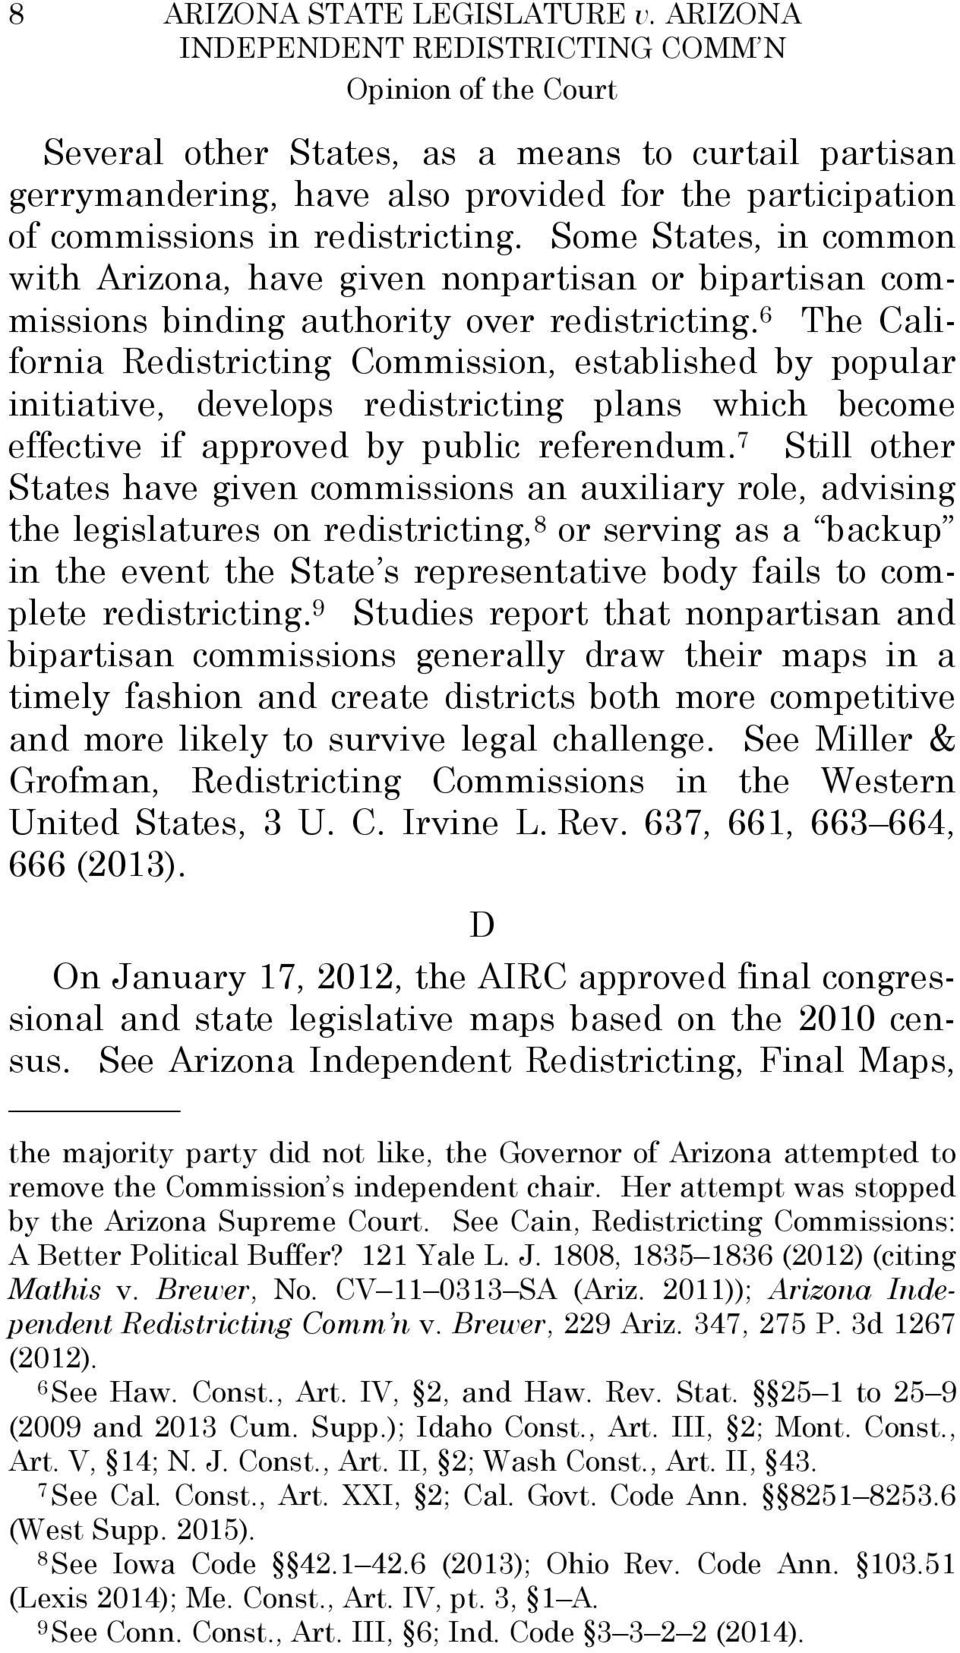 redistricting. Some States, in common with Arizona, have given nonpartisan or bipartisan commissions binding authority over redistricting.